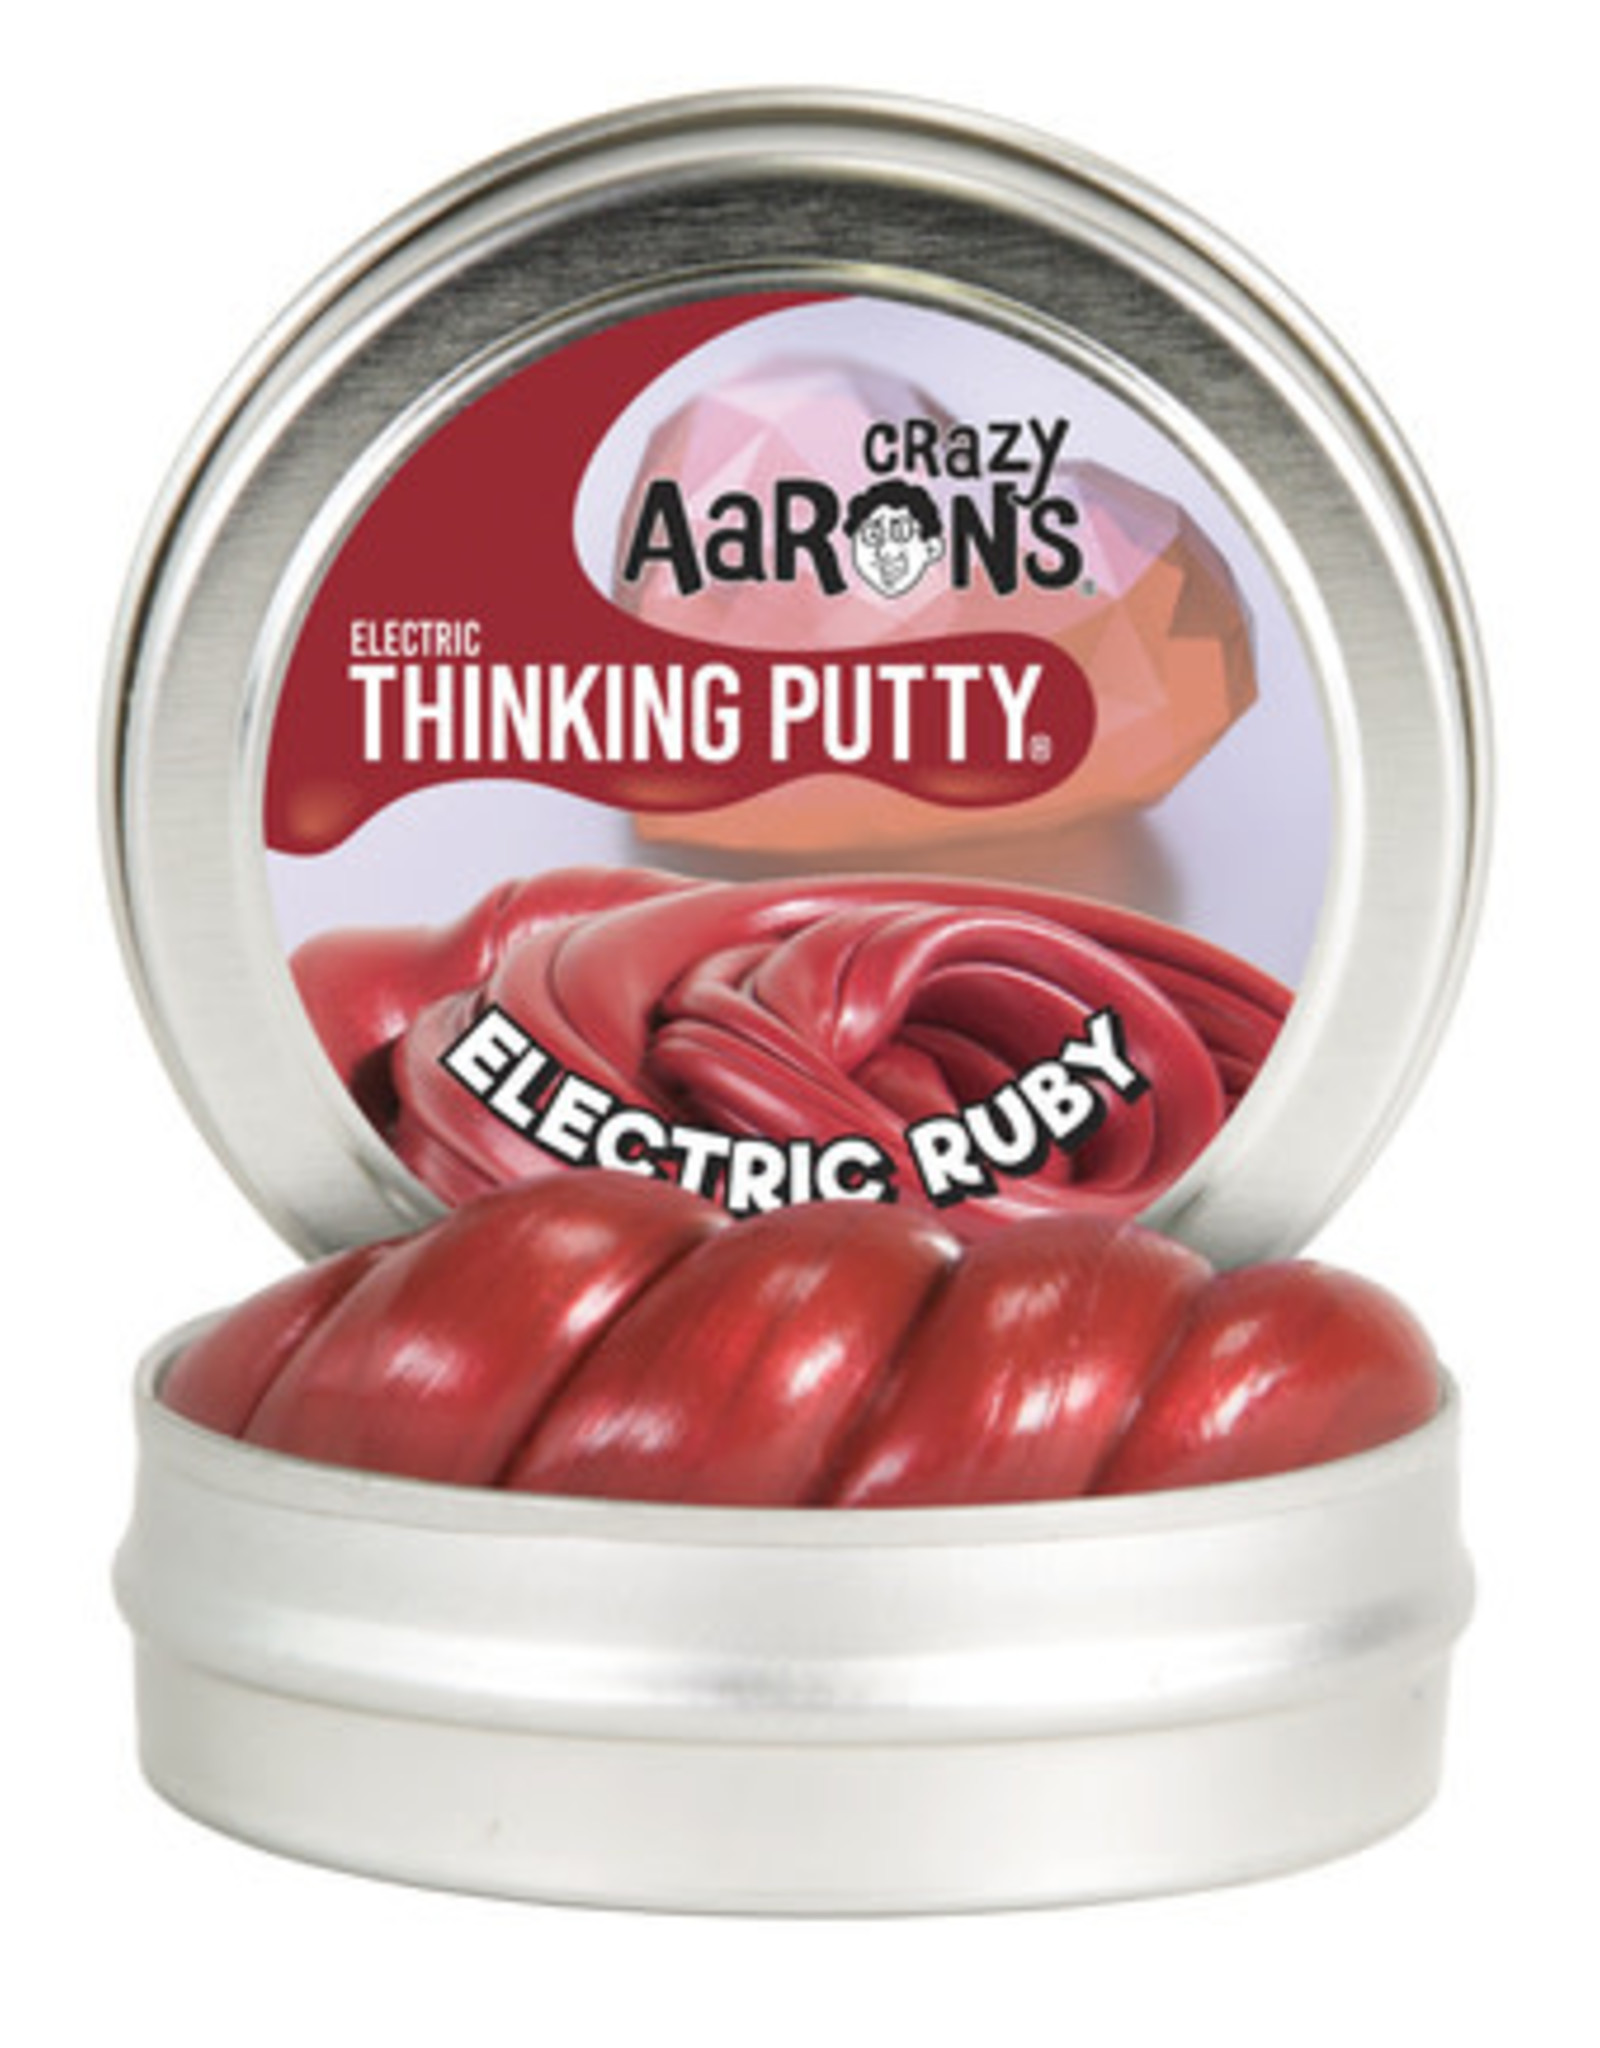 Crazy Aaron's Thinking Putty Crazy Aaron's Mini Tin -  Electric Ruby (Electric)